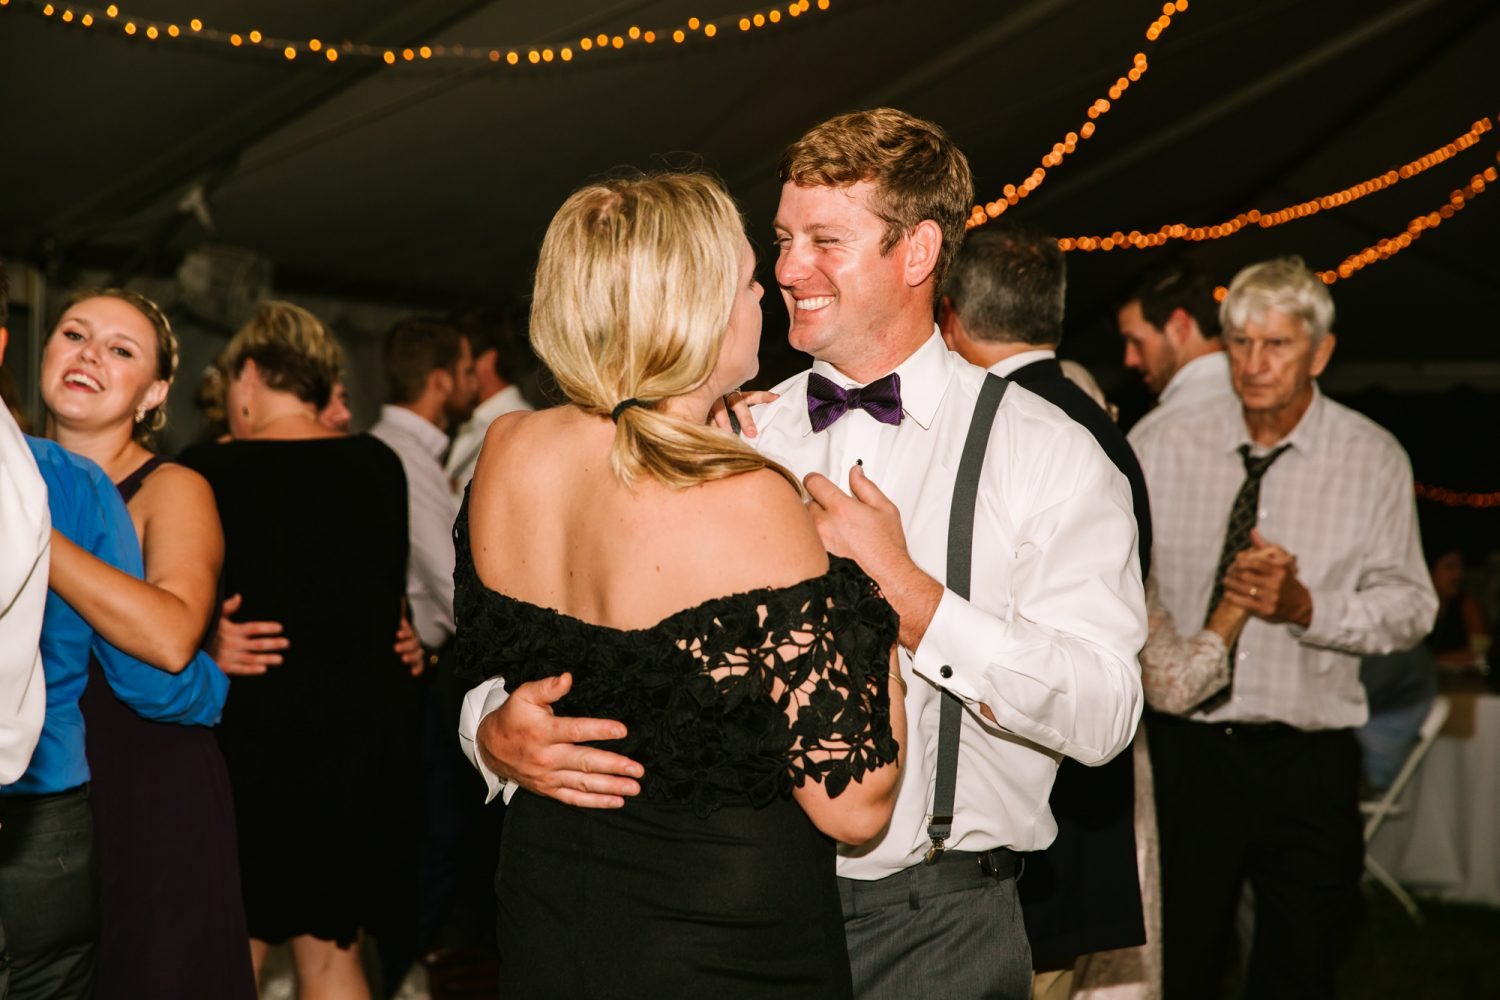 Waynesville, NC Wedding Photography | Wedding Reception Dancing and Smiling